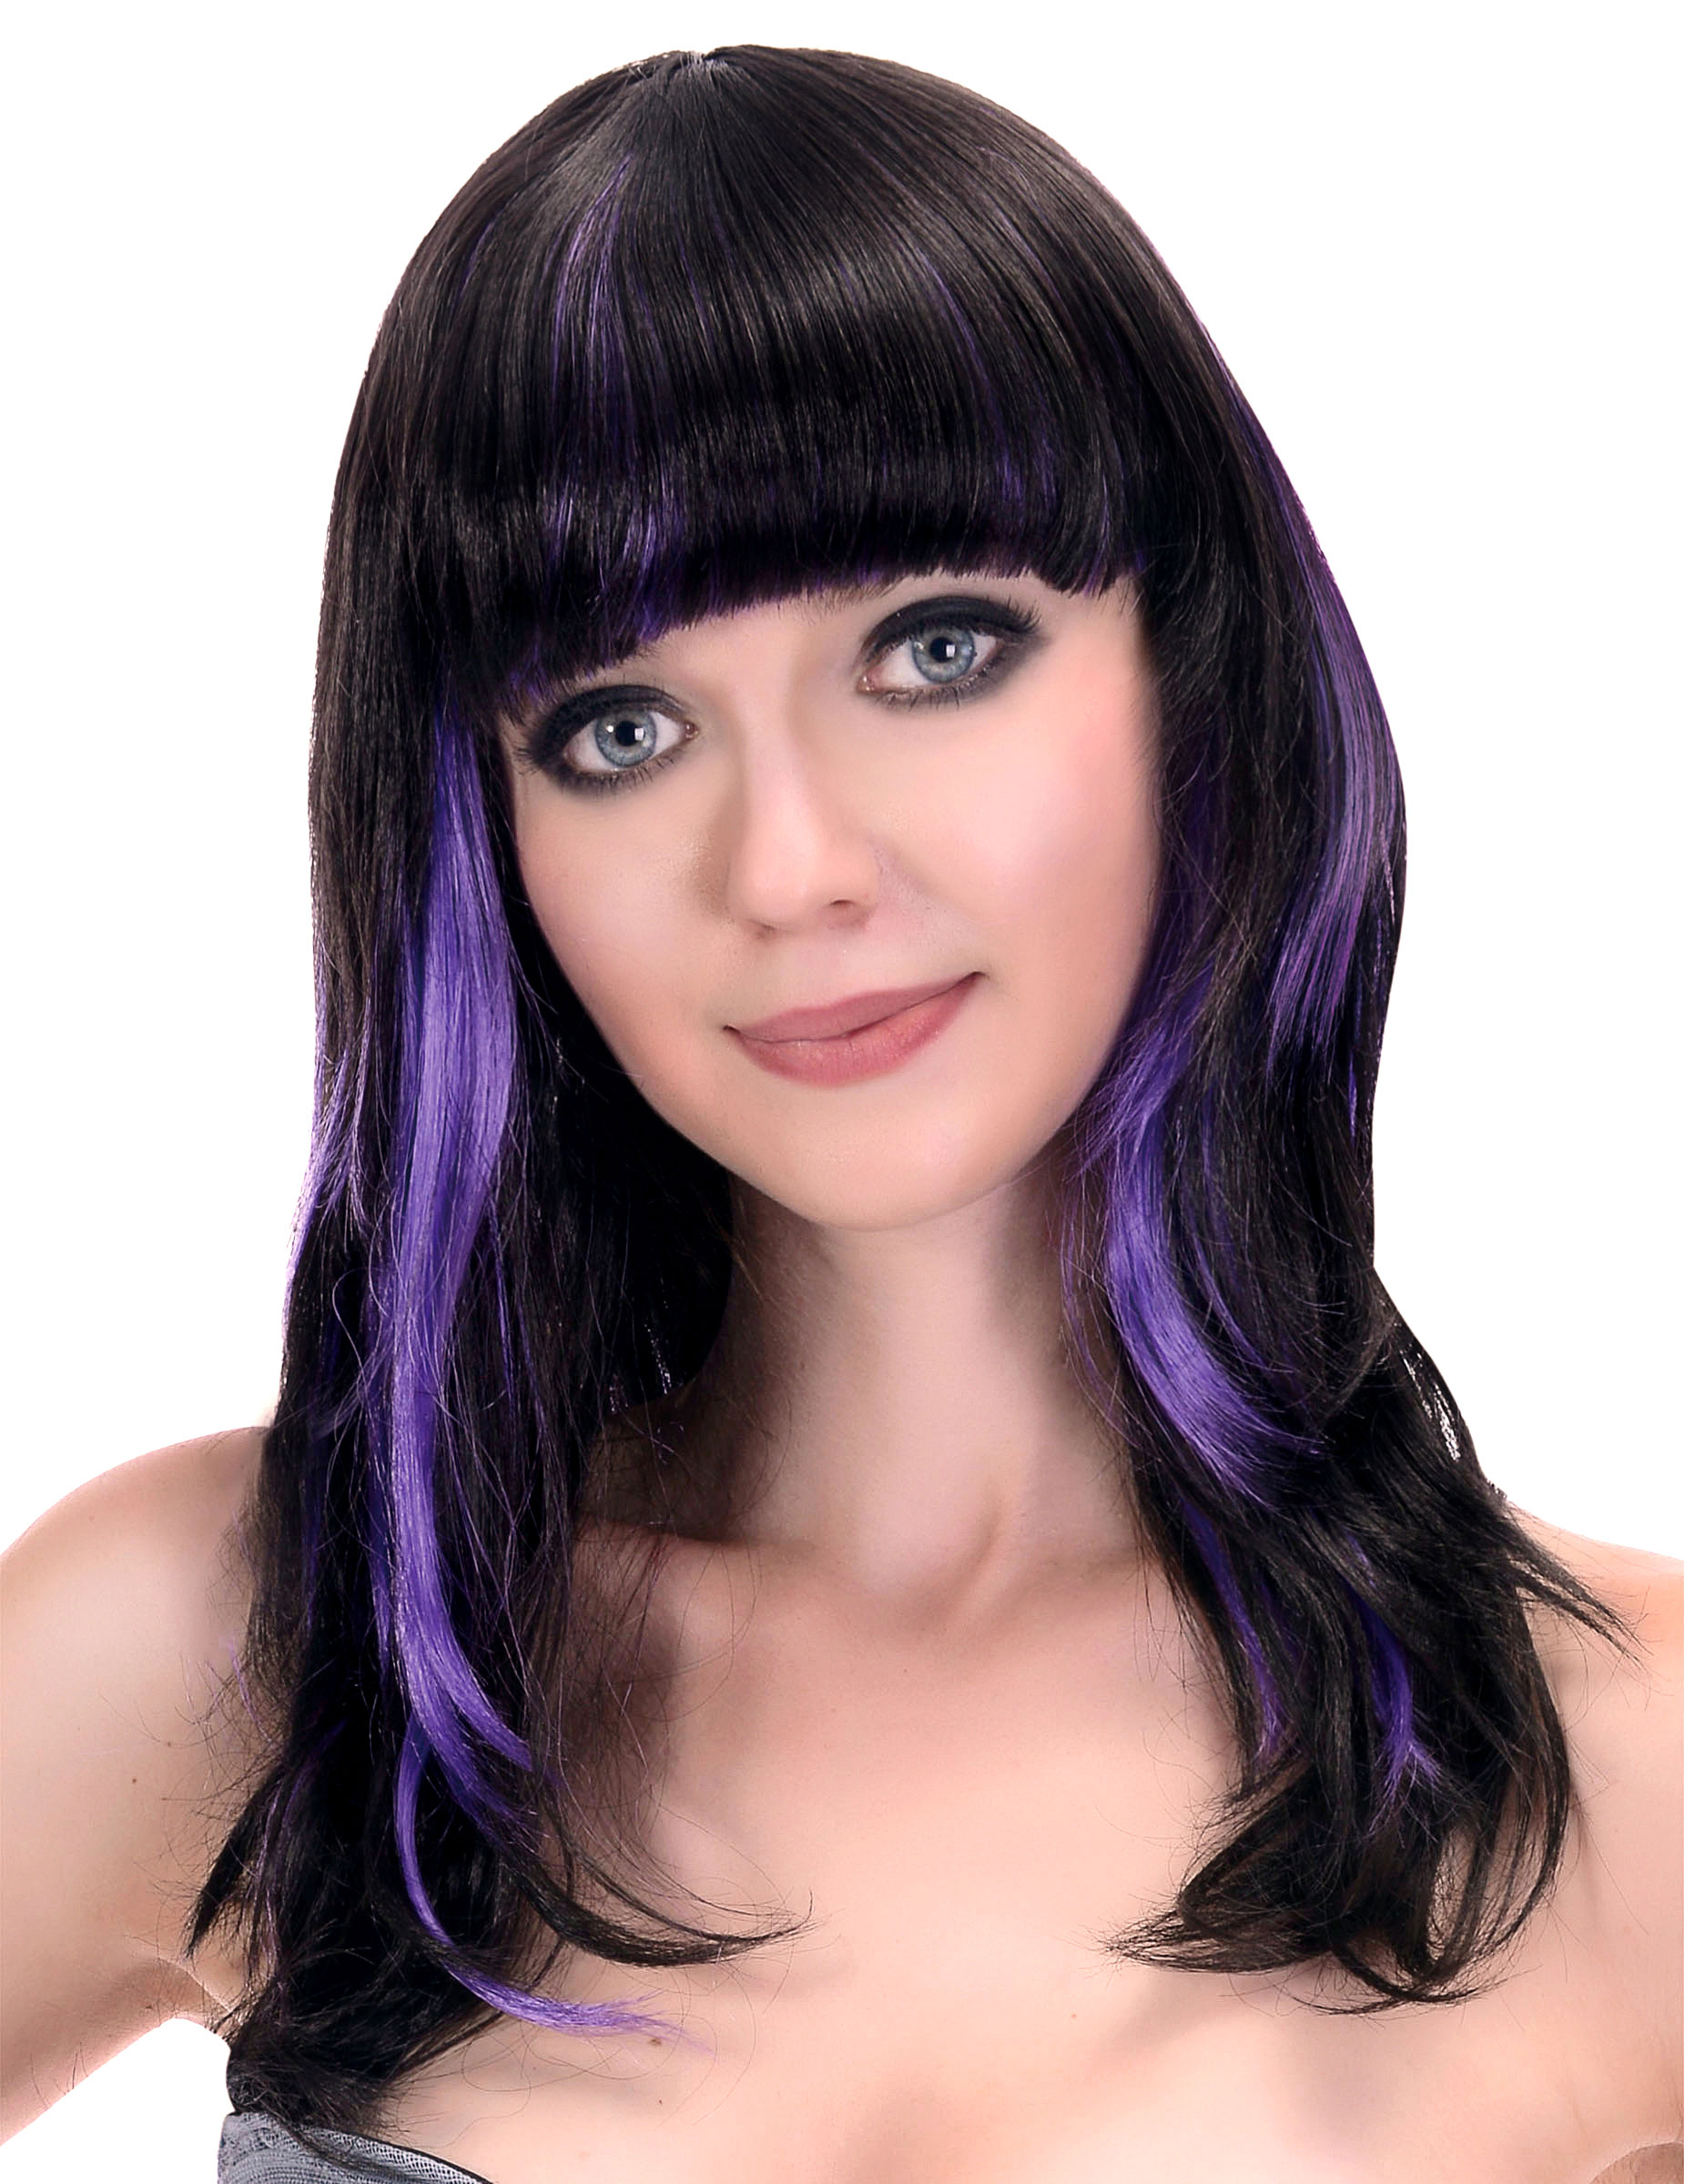 Hair Color Feria Feria Hair Color Purple Photo 1 Hair